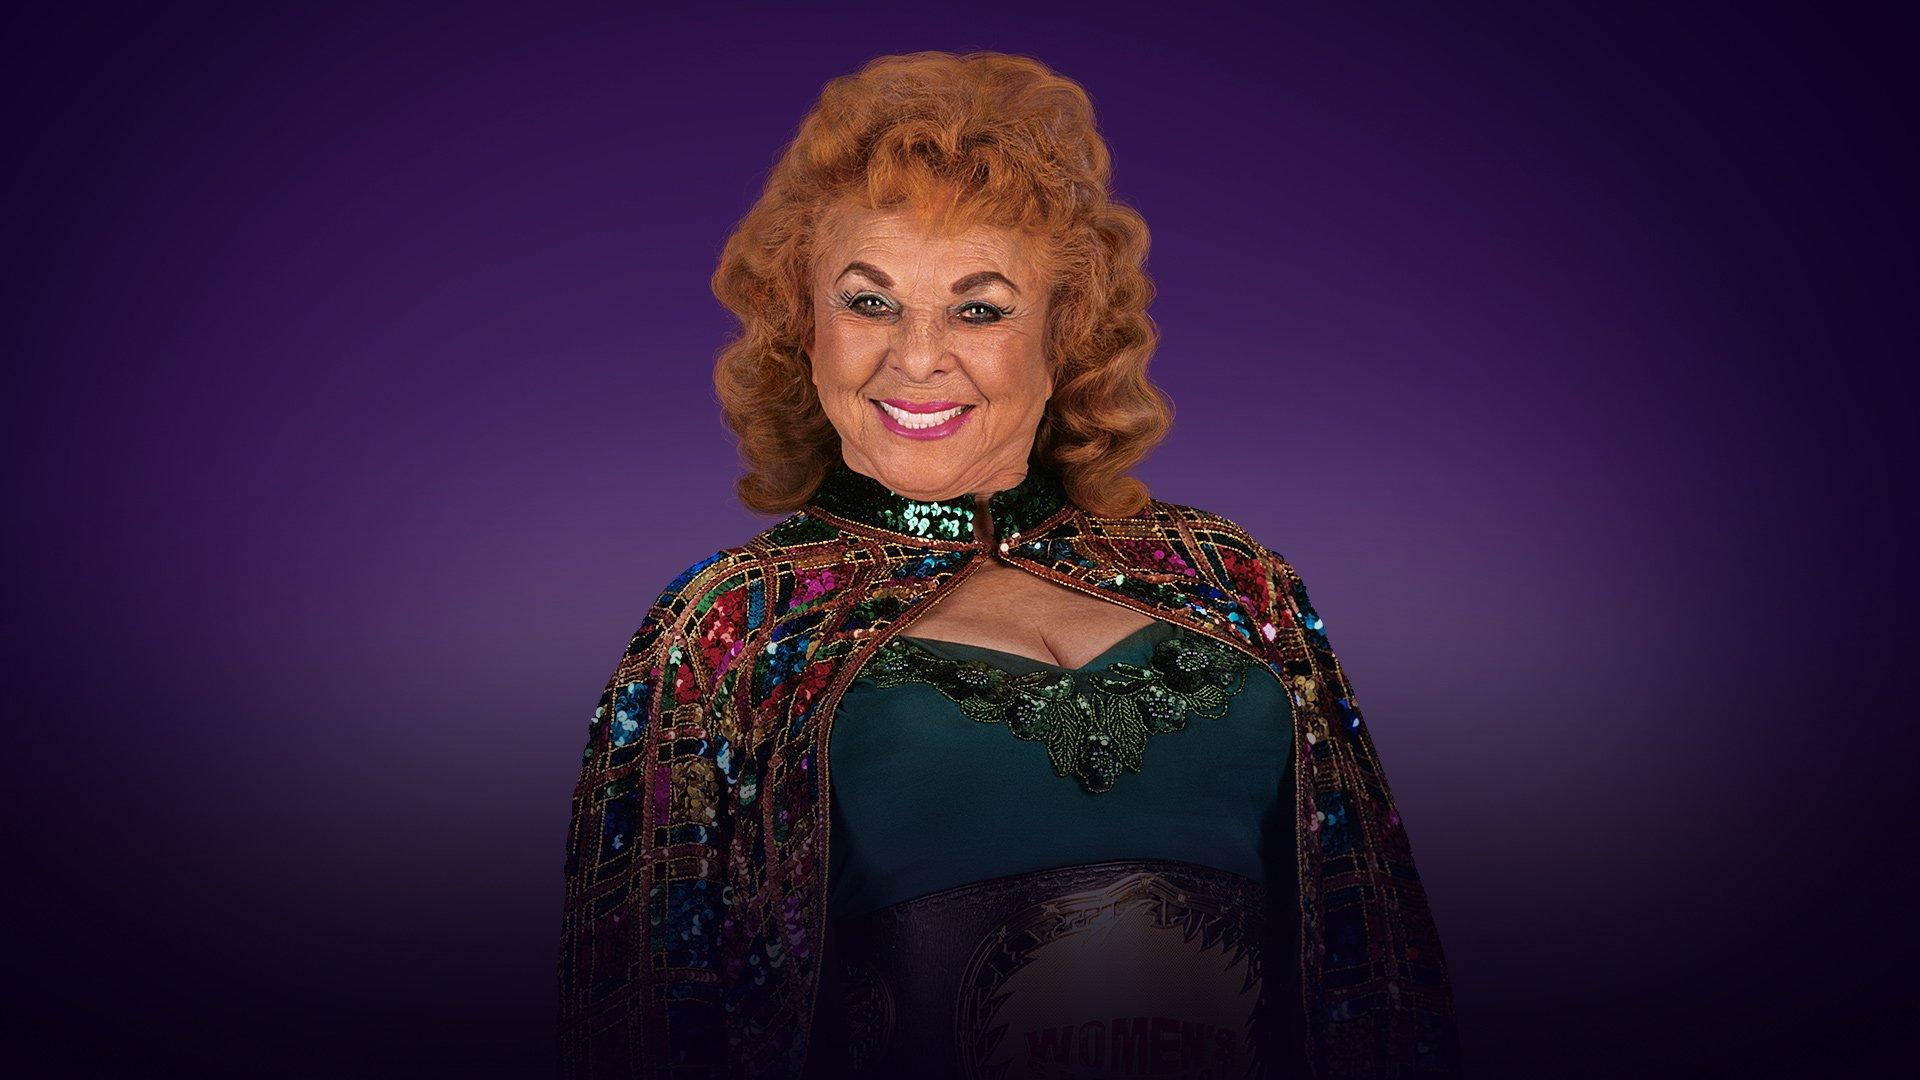 WWE WrestleMania Sponsor Says Fabulous Moolah Battle Royal Name Is 'Unacceptable'